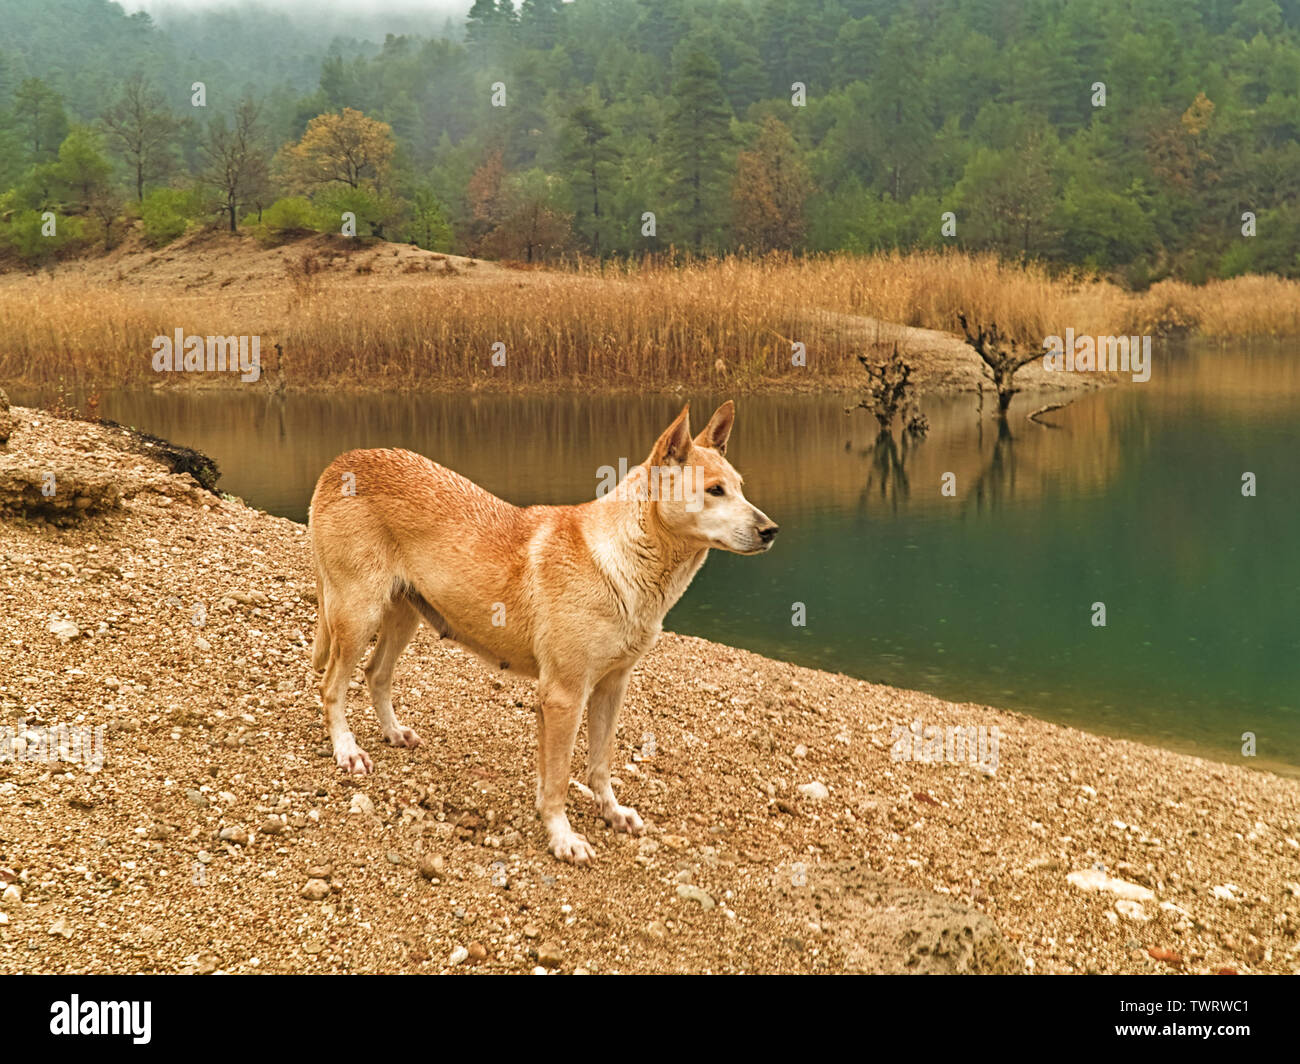 Beautiful stray dog on the banks of natural lake Tsivlou, Peloponnese Greece. - Stock Image